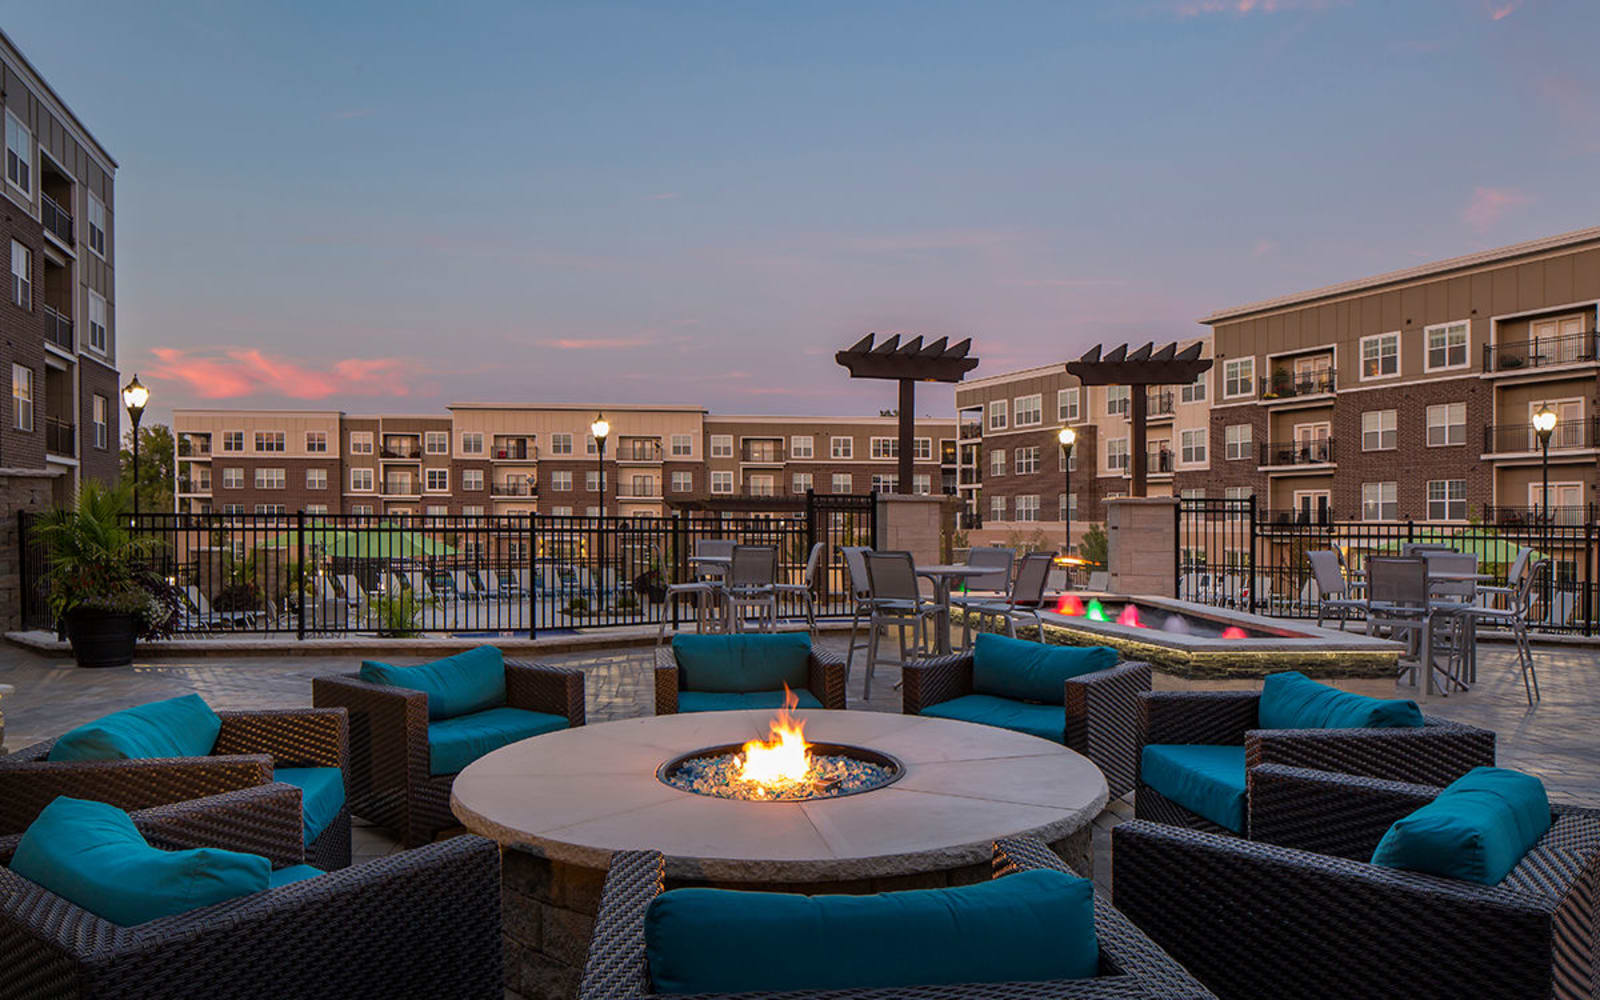 Patio at night at Allure Apartments in Centerville, Ohio